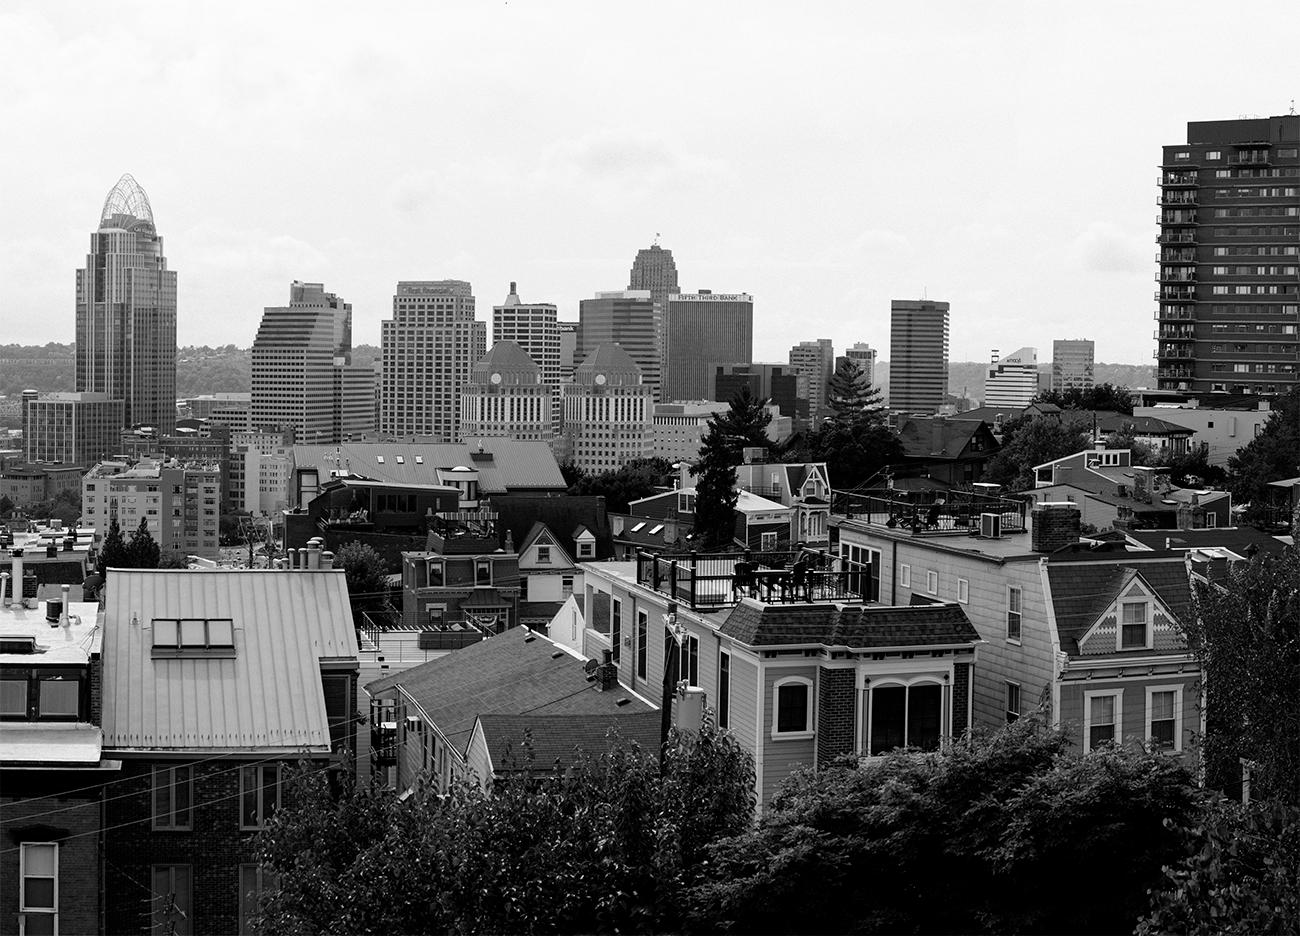 Closeup detail of a panoramic photo of Cincinnati looking west from Mt. Adams by Chris Glass from 2018. View the whole image by going to the Public Library downtown and seeing the Panorama of Progress exhibit. The exhibit runs until October 31. ADDRESS: 800 Vine Street (45202) / Image courtesy of the Public Library of Cincinnati // Published: 10.4.18